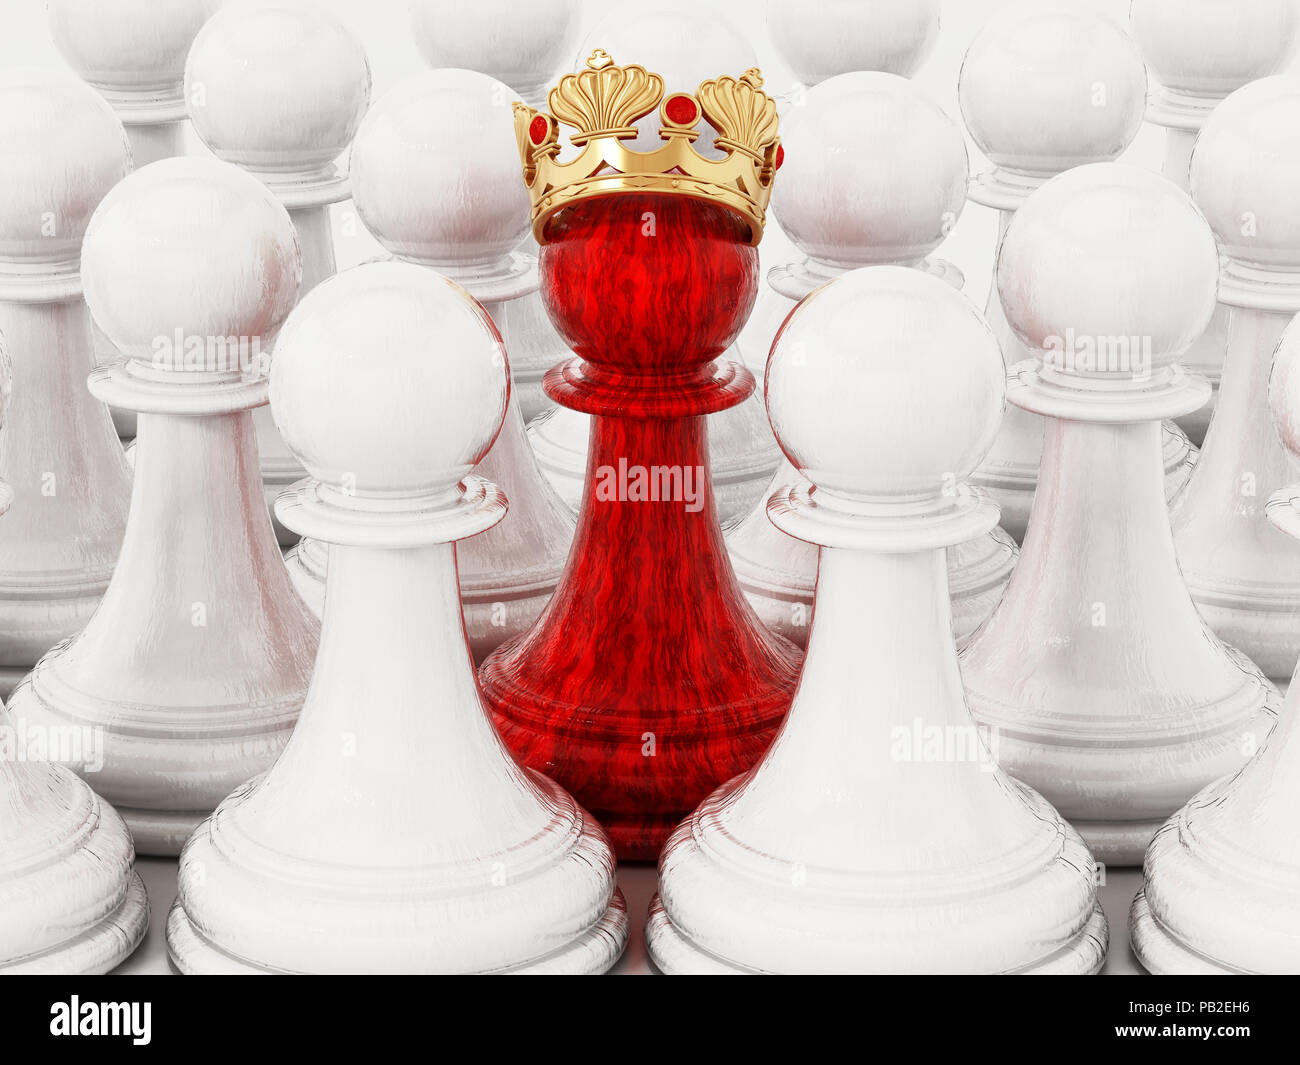 Red chess pawn with golden crown standing out among white pawns. 3D illustration. - Stock Image